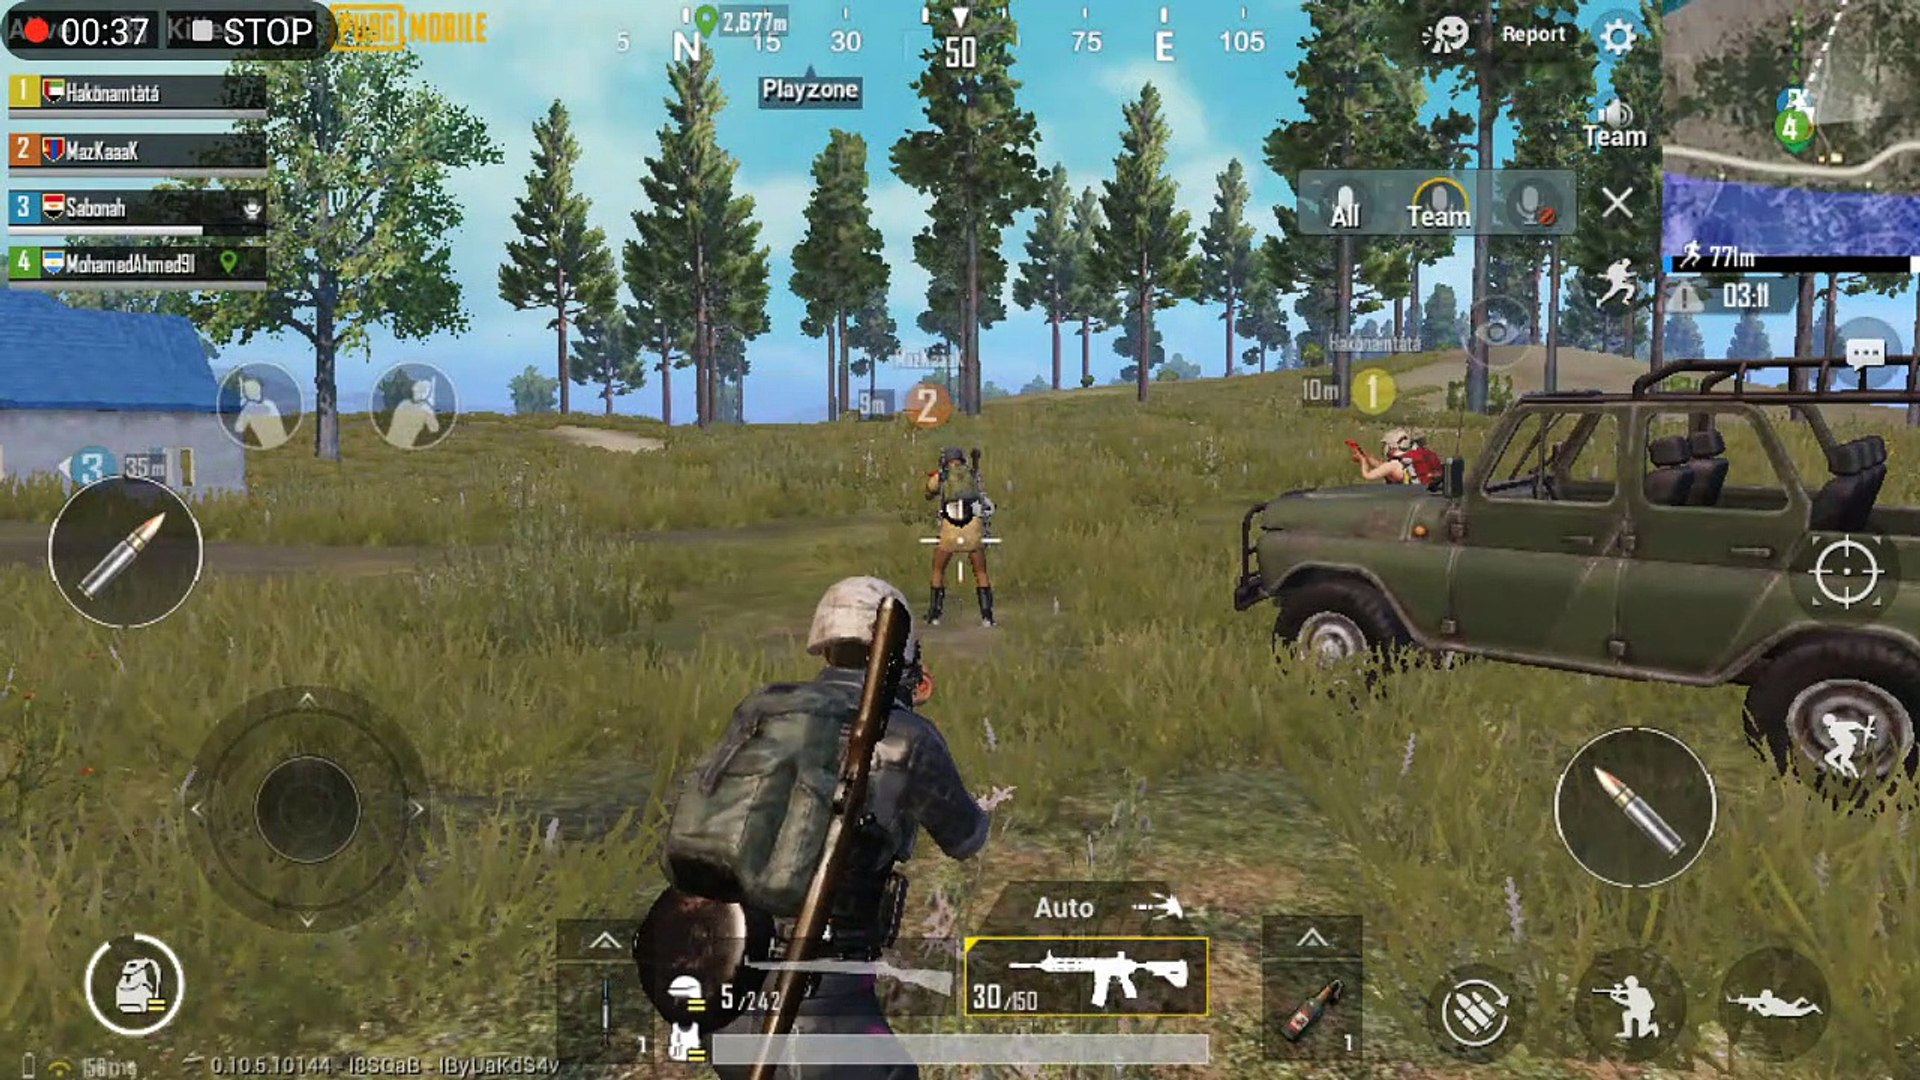 5 Flare Gun  Party At The Same Time In Pubg Mobile Game